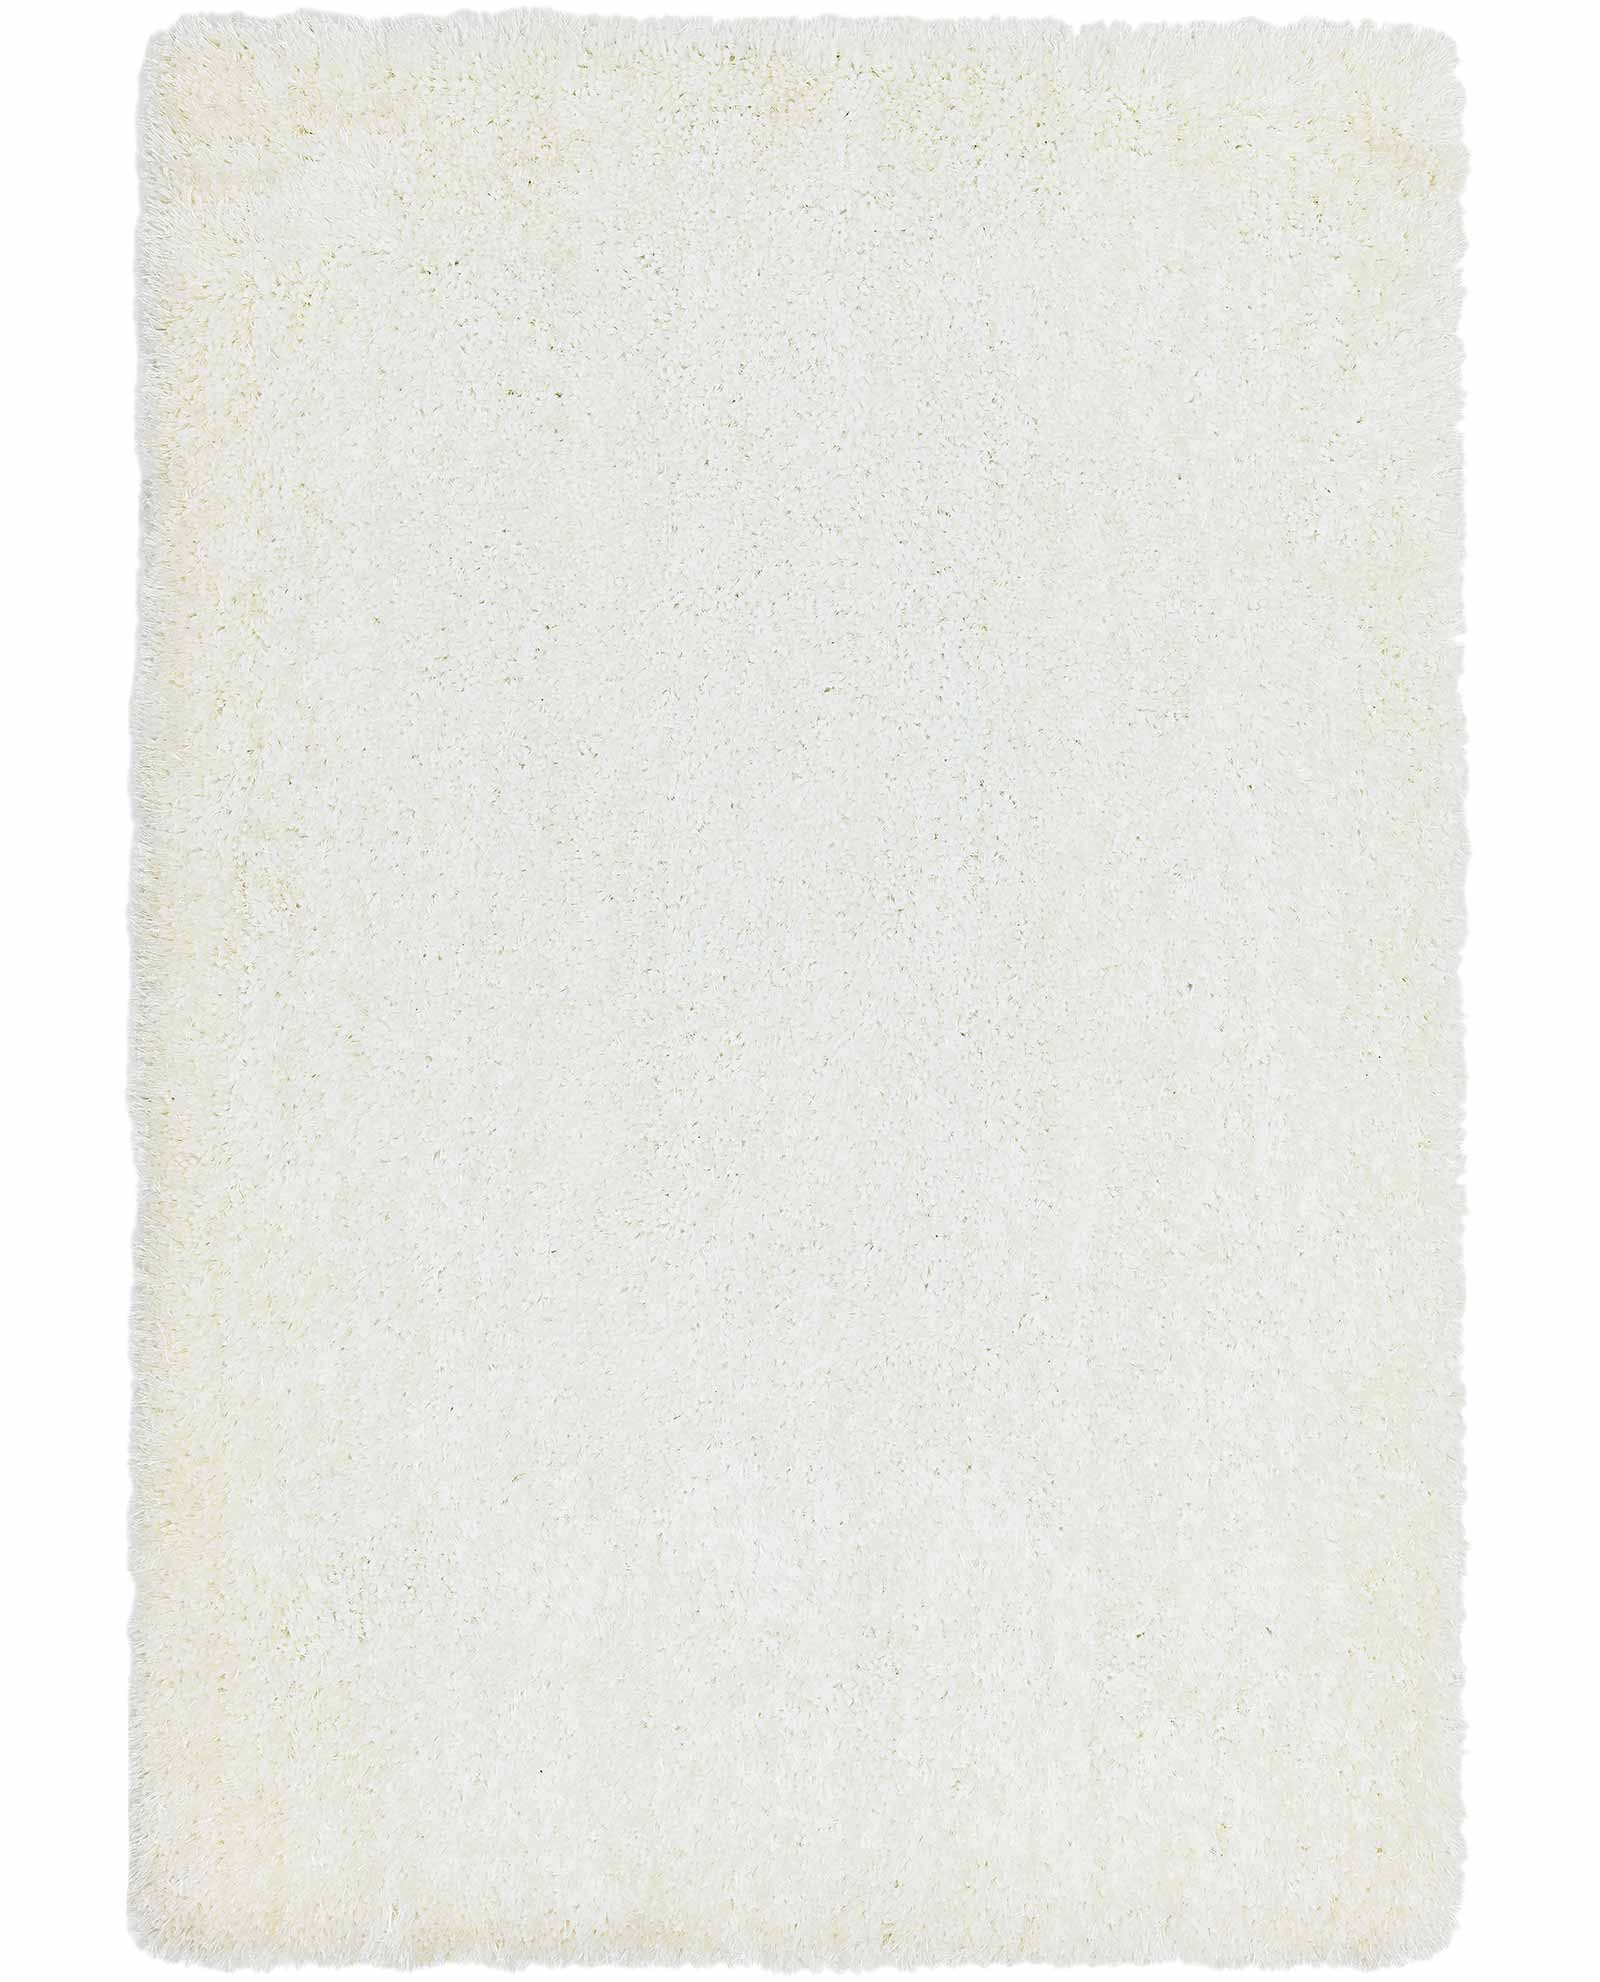 Andessi rug Mythica White 1